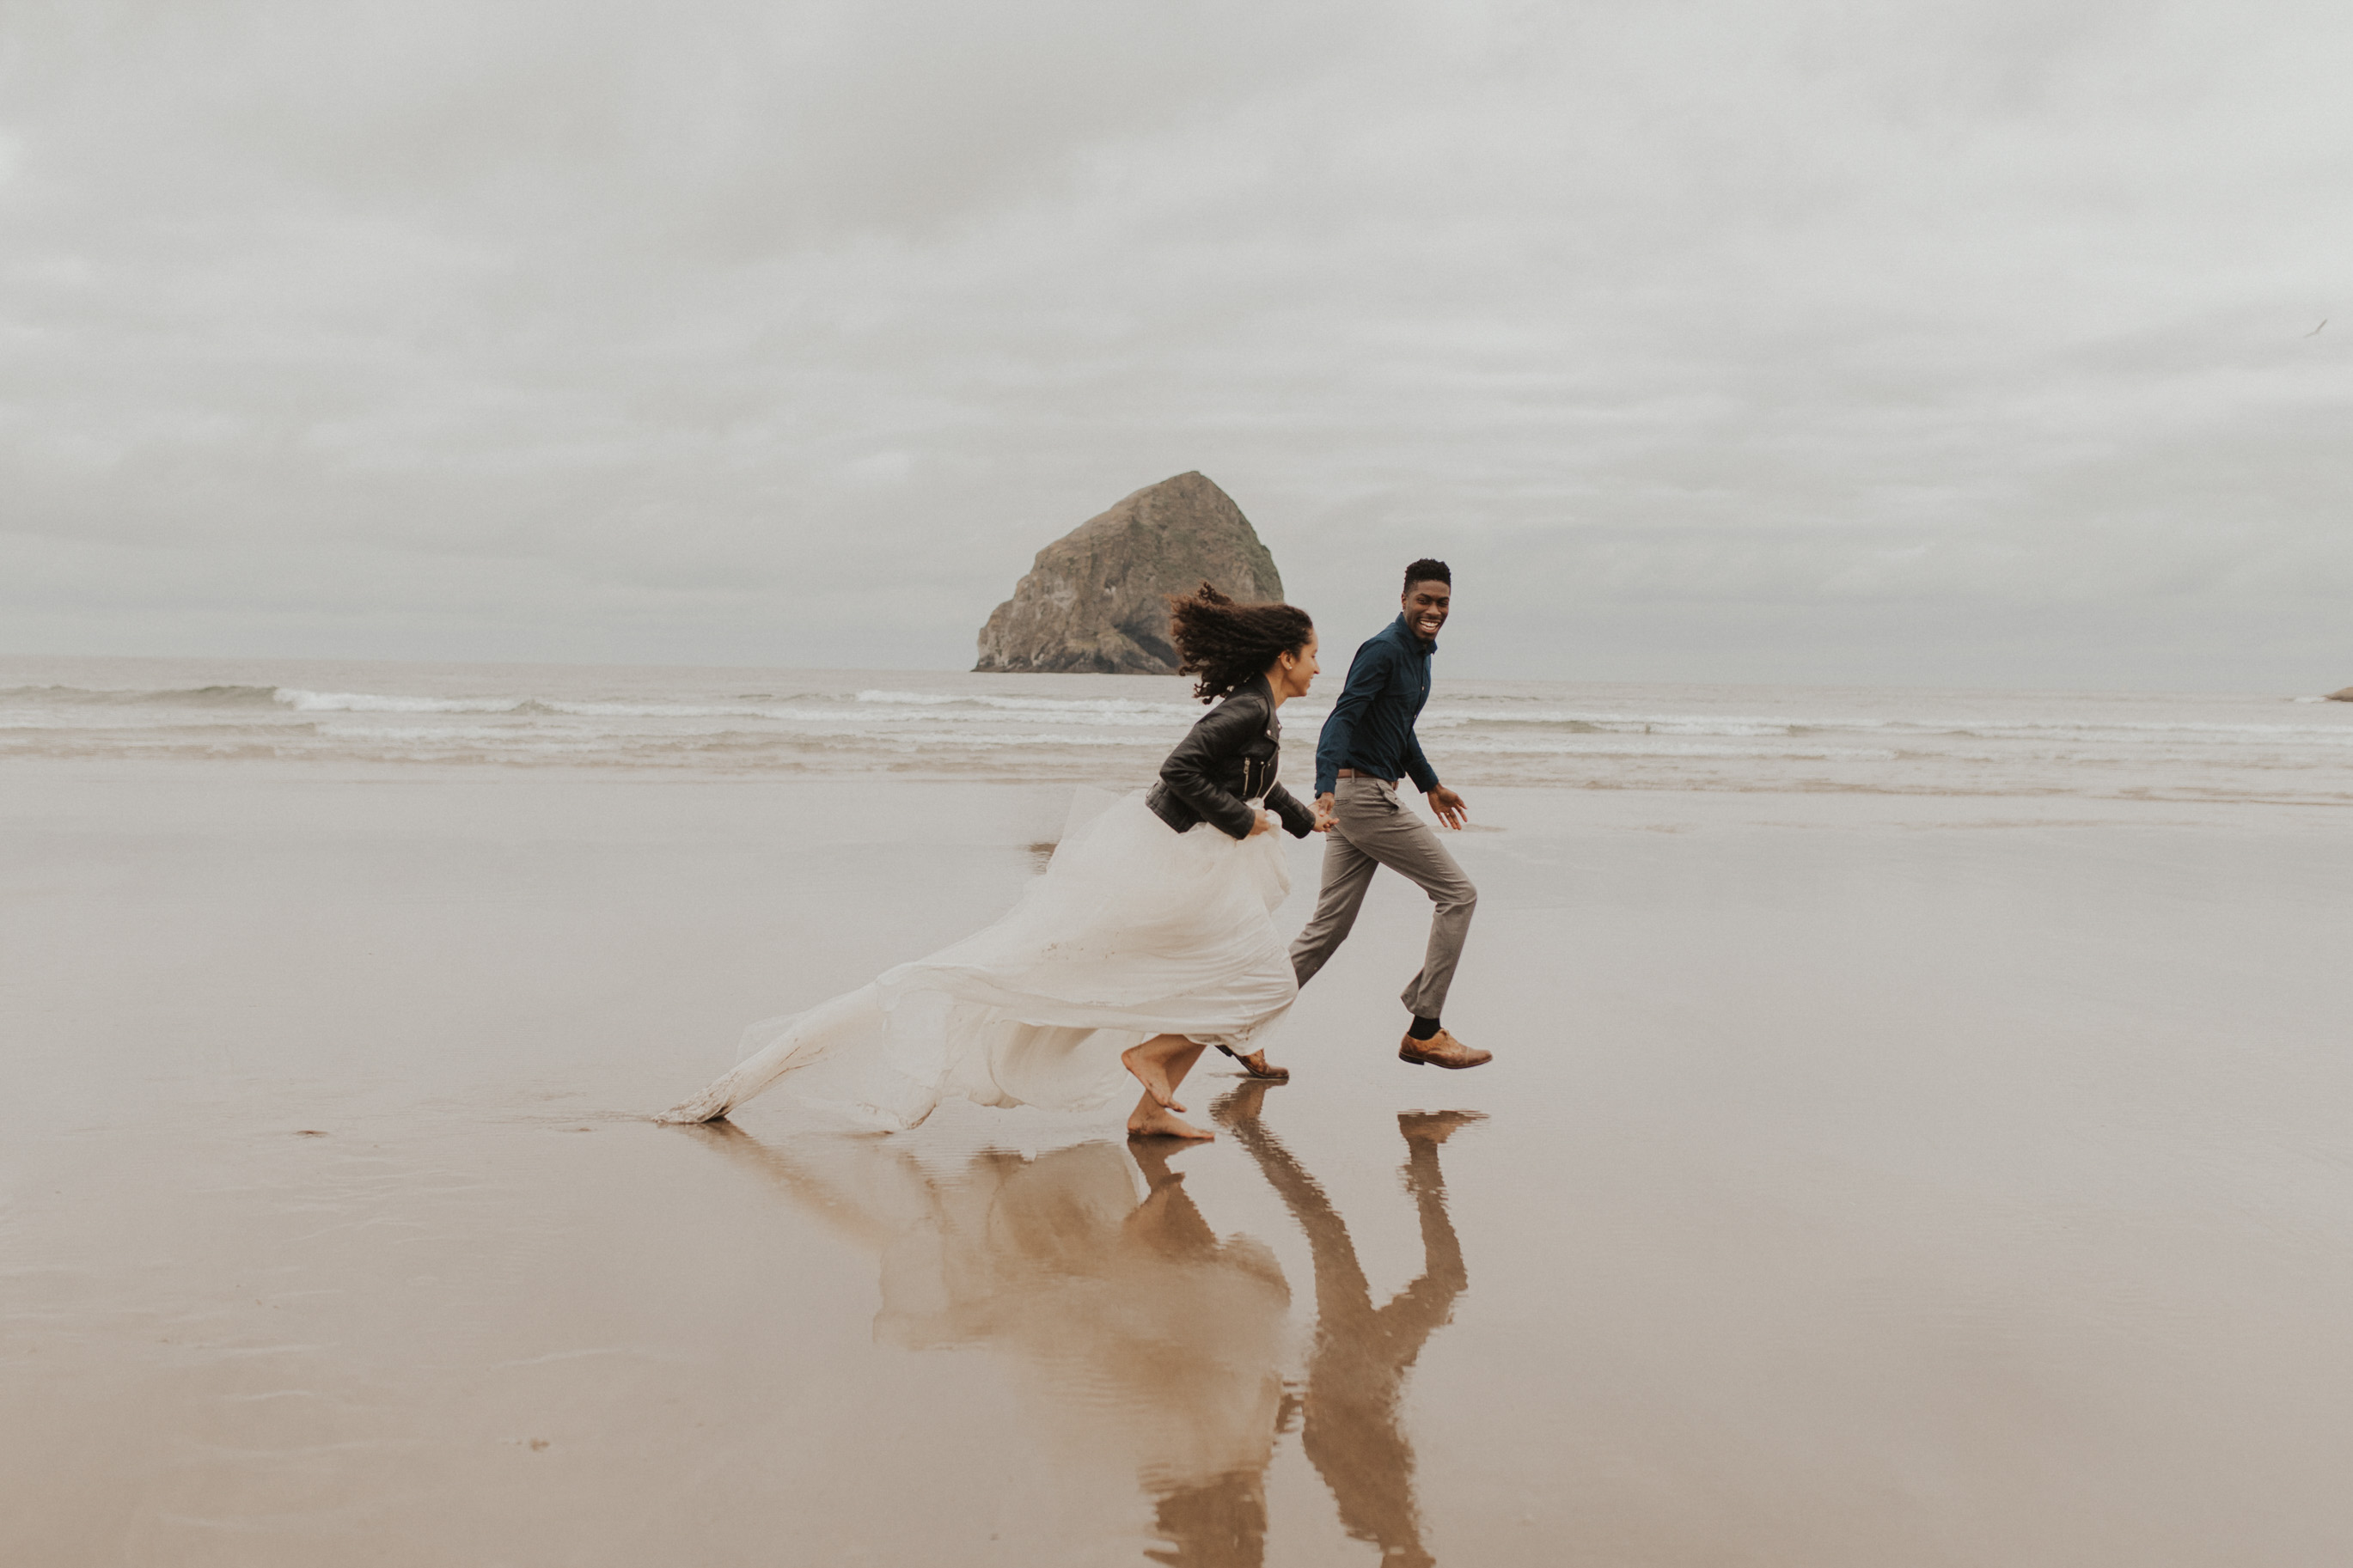 A bride and groom running on the beach as the waves crash at the background